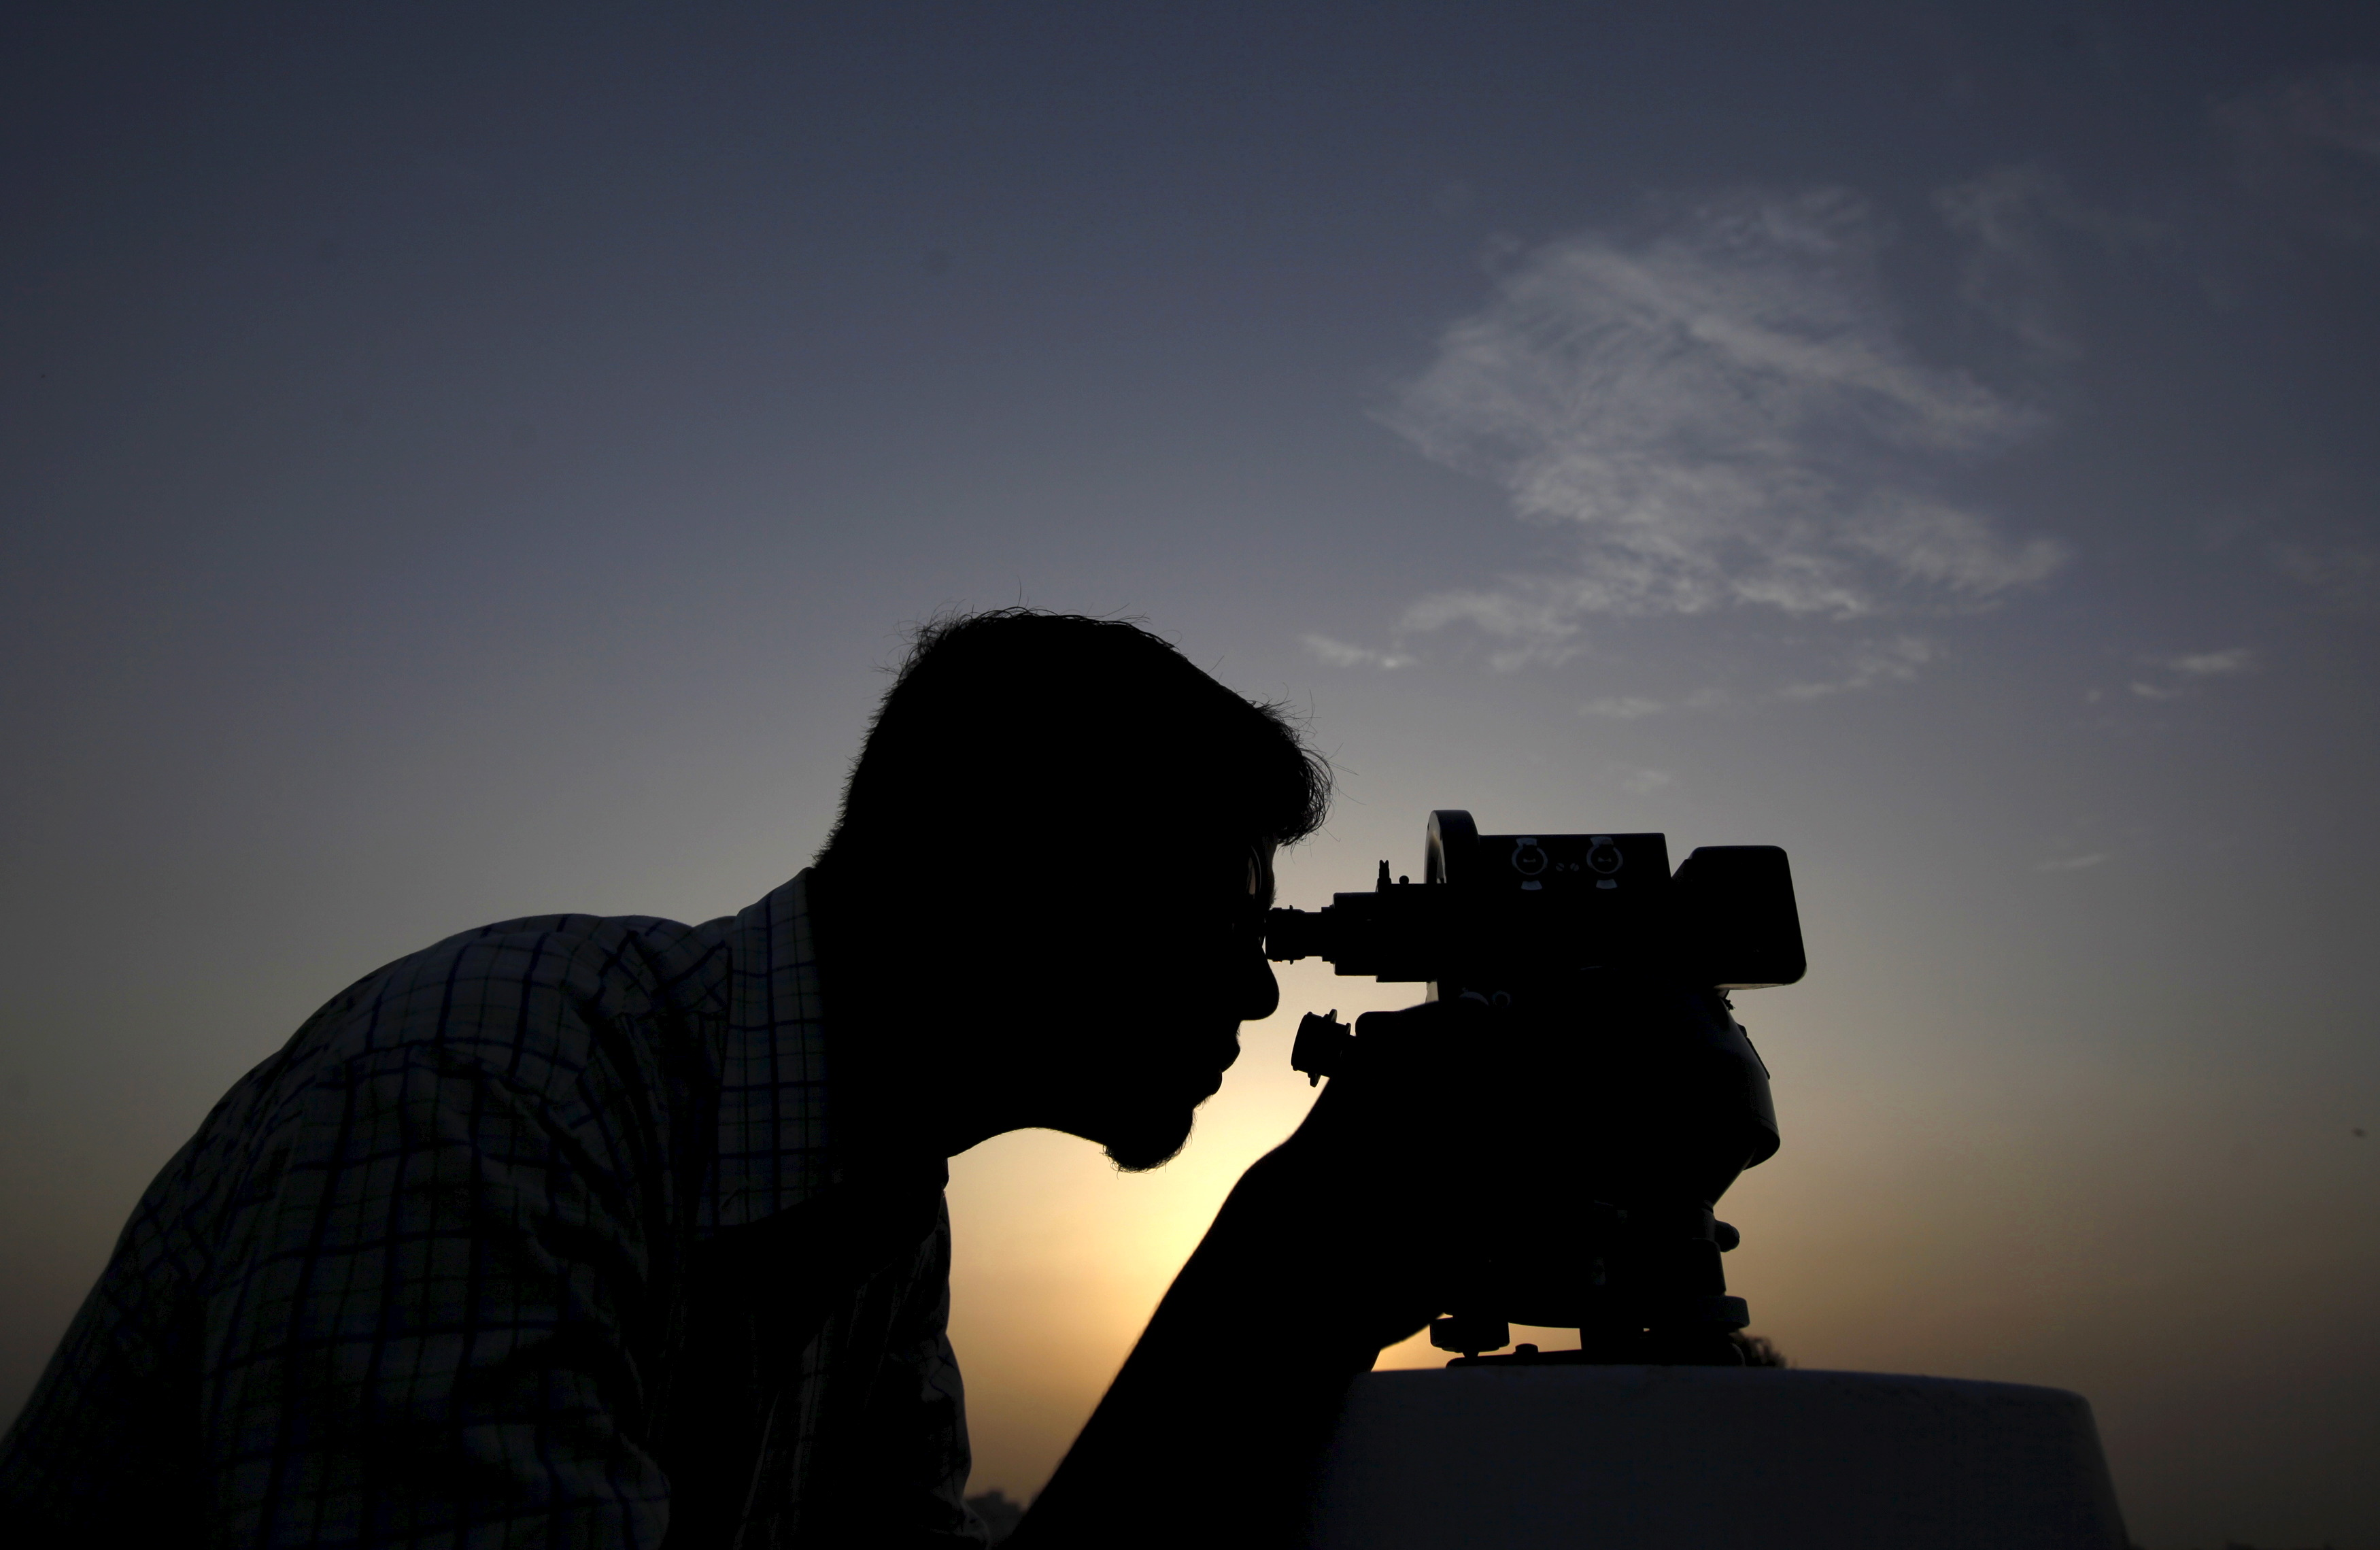 A man is silhouetted as he adjusts a theodolite to look for the new moon that will mark the start of Ramadan, from Pakistan's Meteorological Department (PMD) in Karachi, Pakistan, June 17, 2015. The same process is used to determine the official date of Eid al-Fitr. Photo by Akhtar Soomro/Reuters